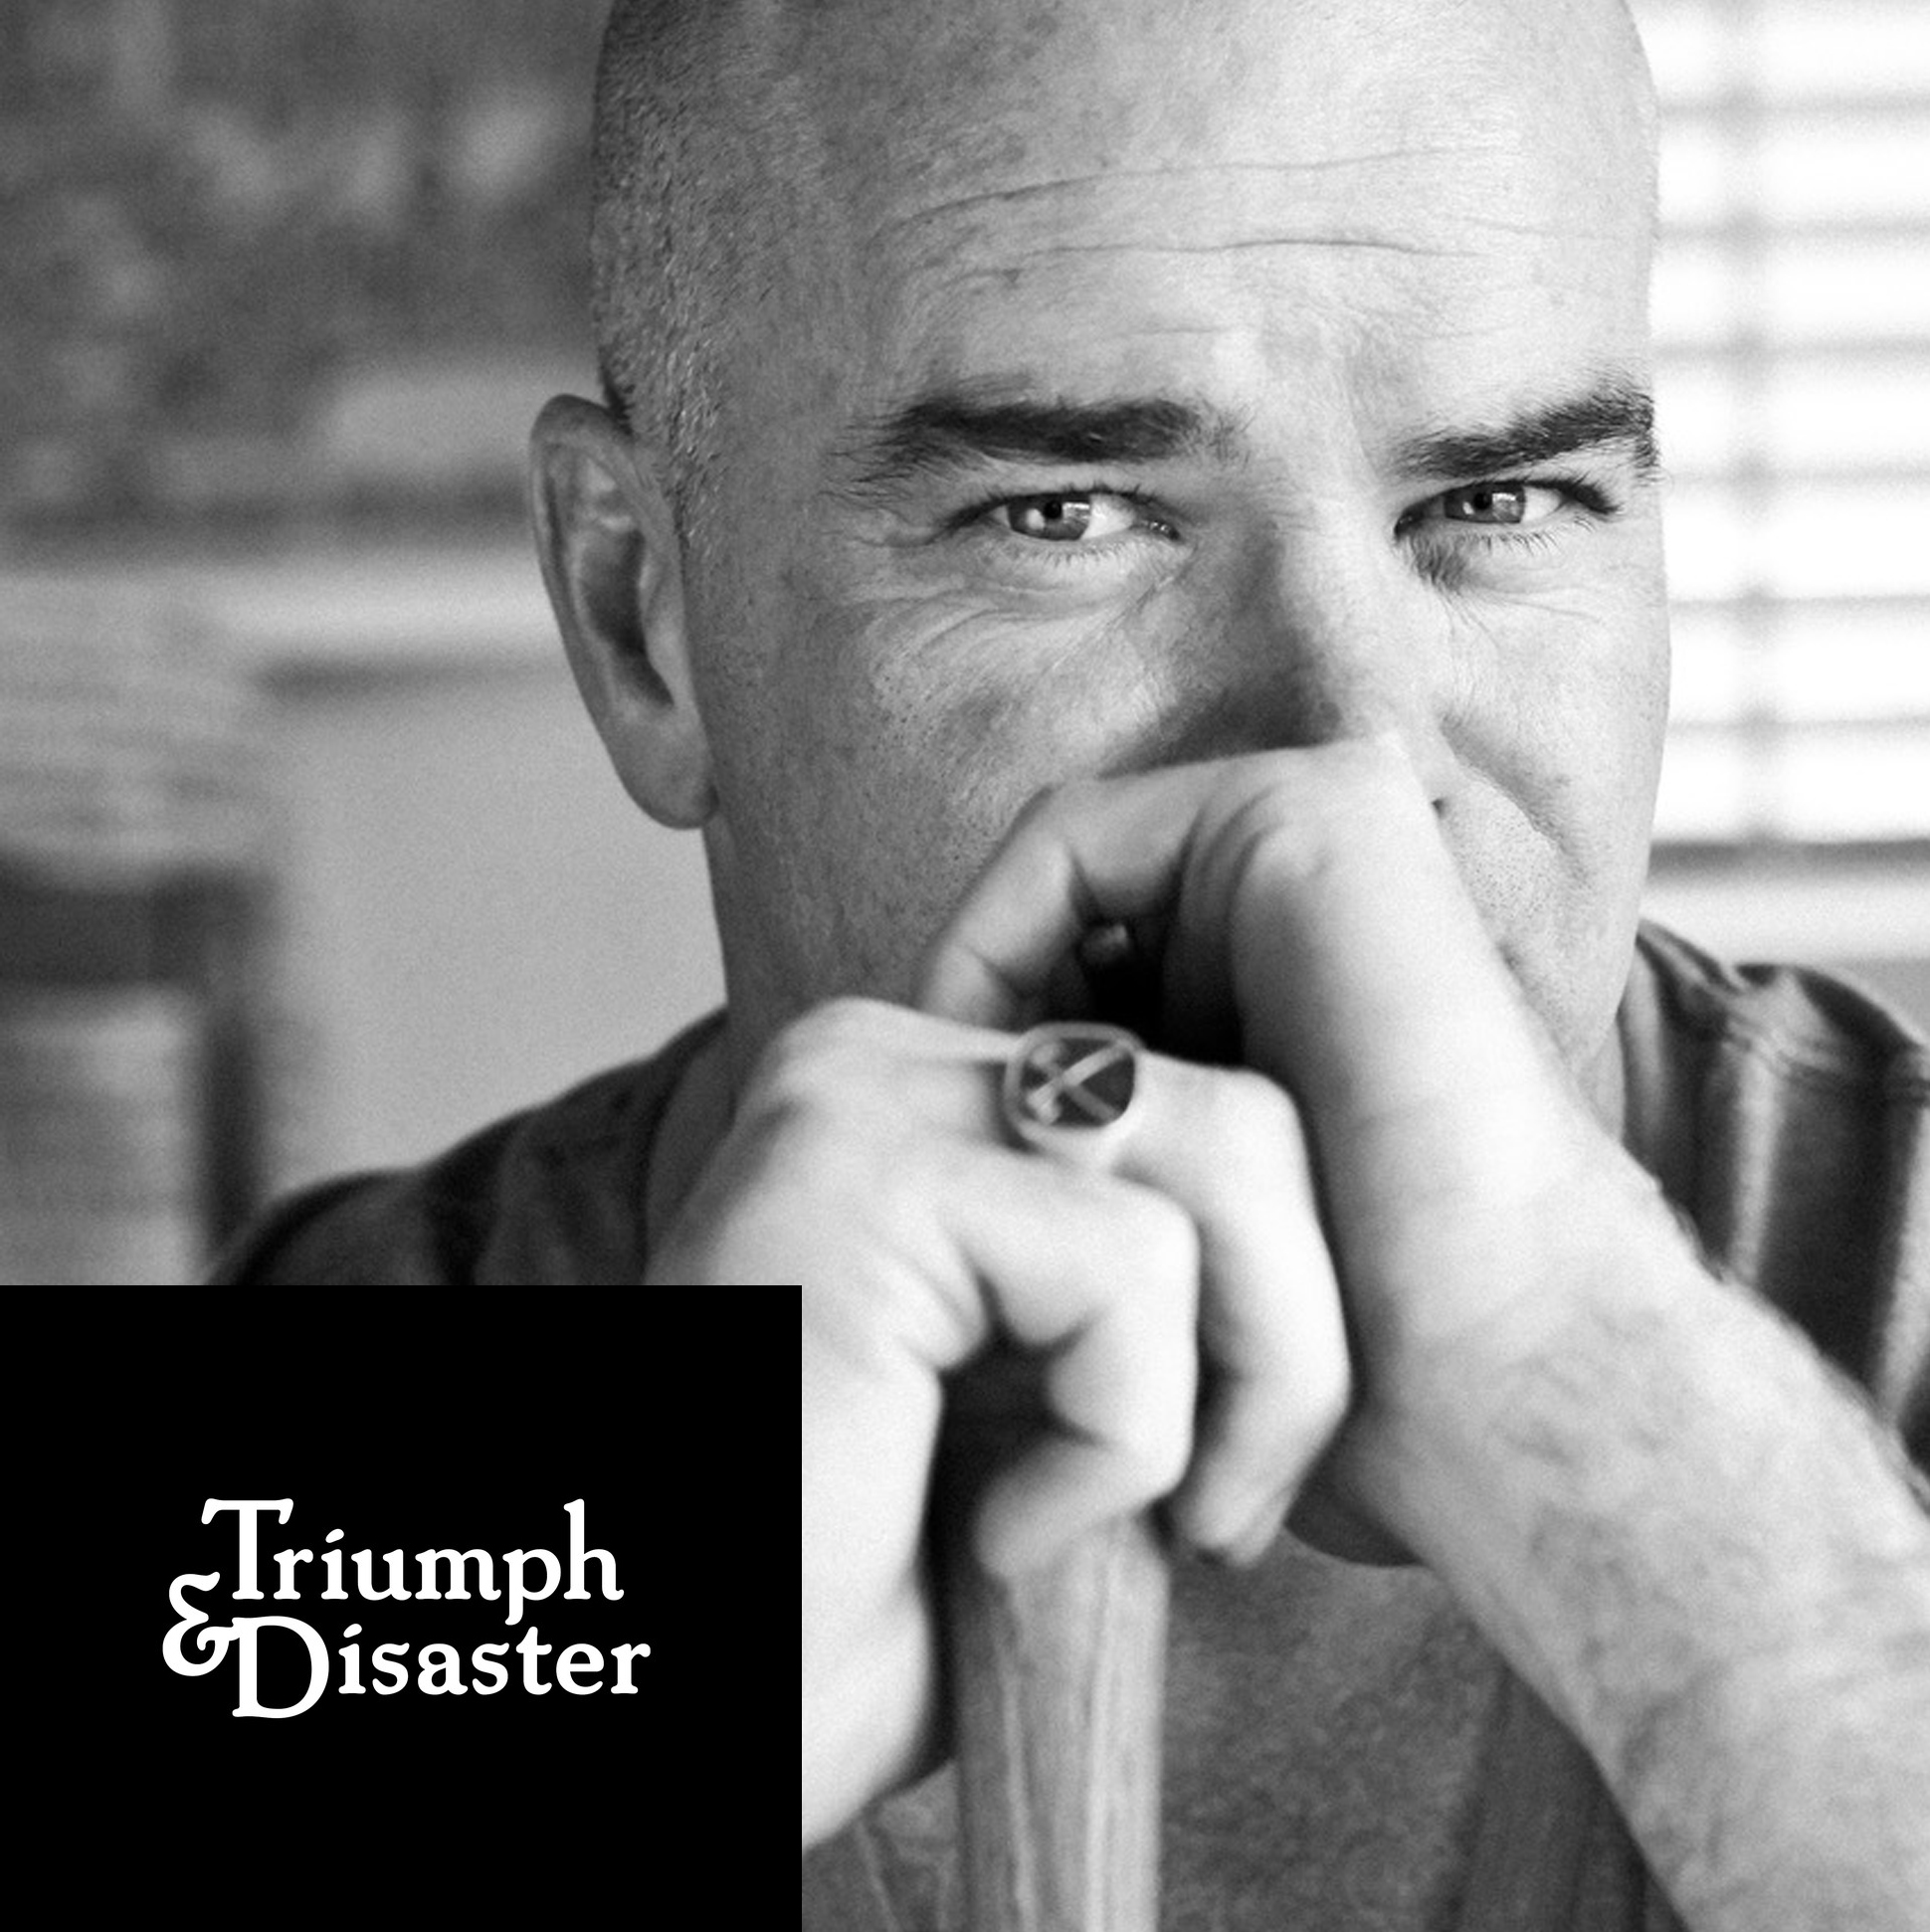 TRIUMPH & DISASTER -